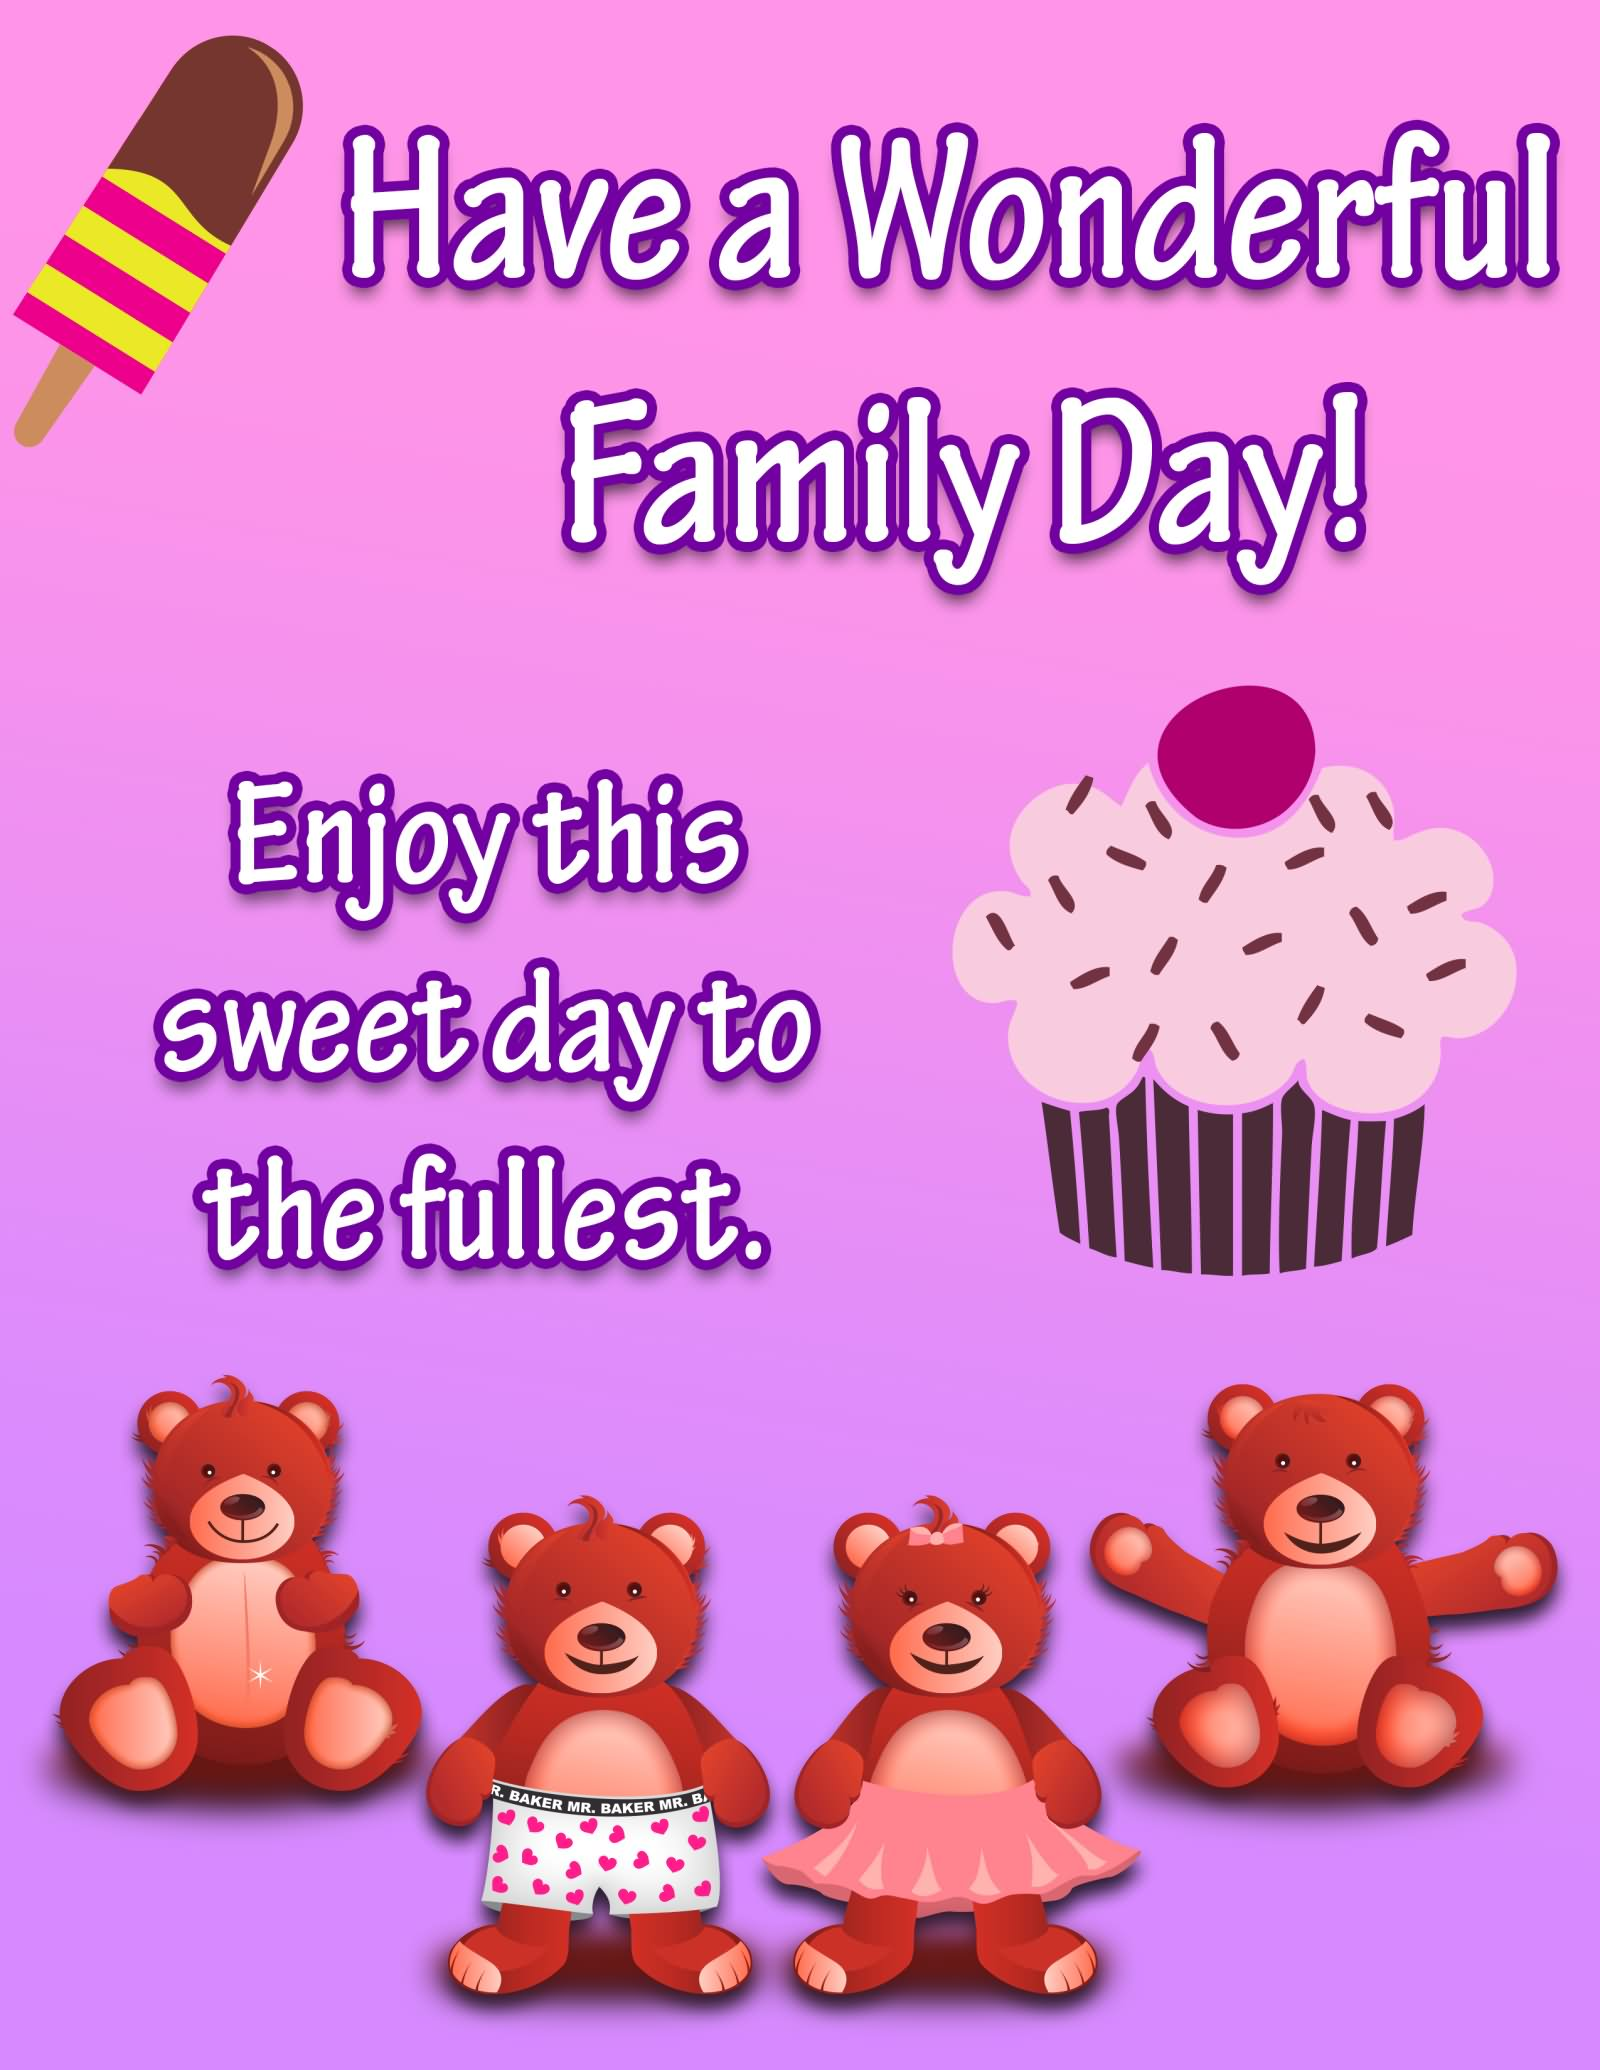 35 adorable happy family day 2016 wish pictures have a wonderful family day greeting card m4hsunfo